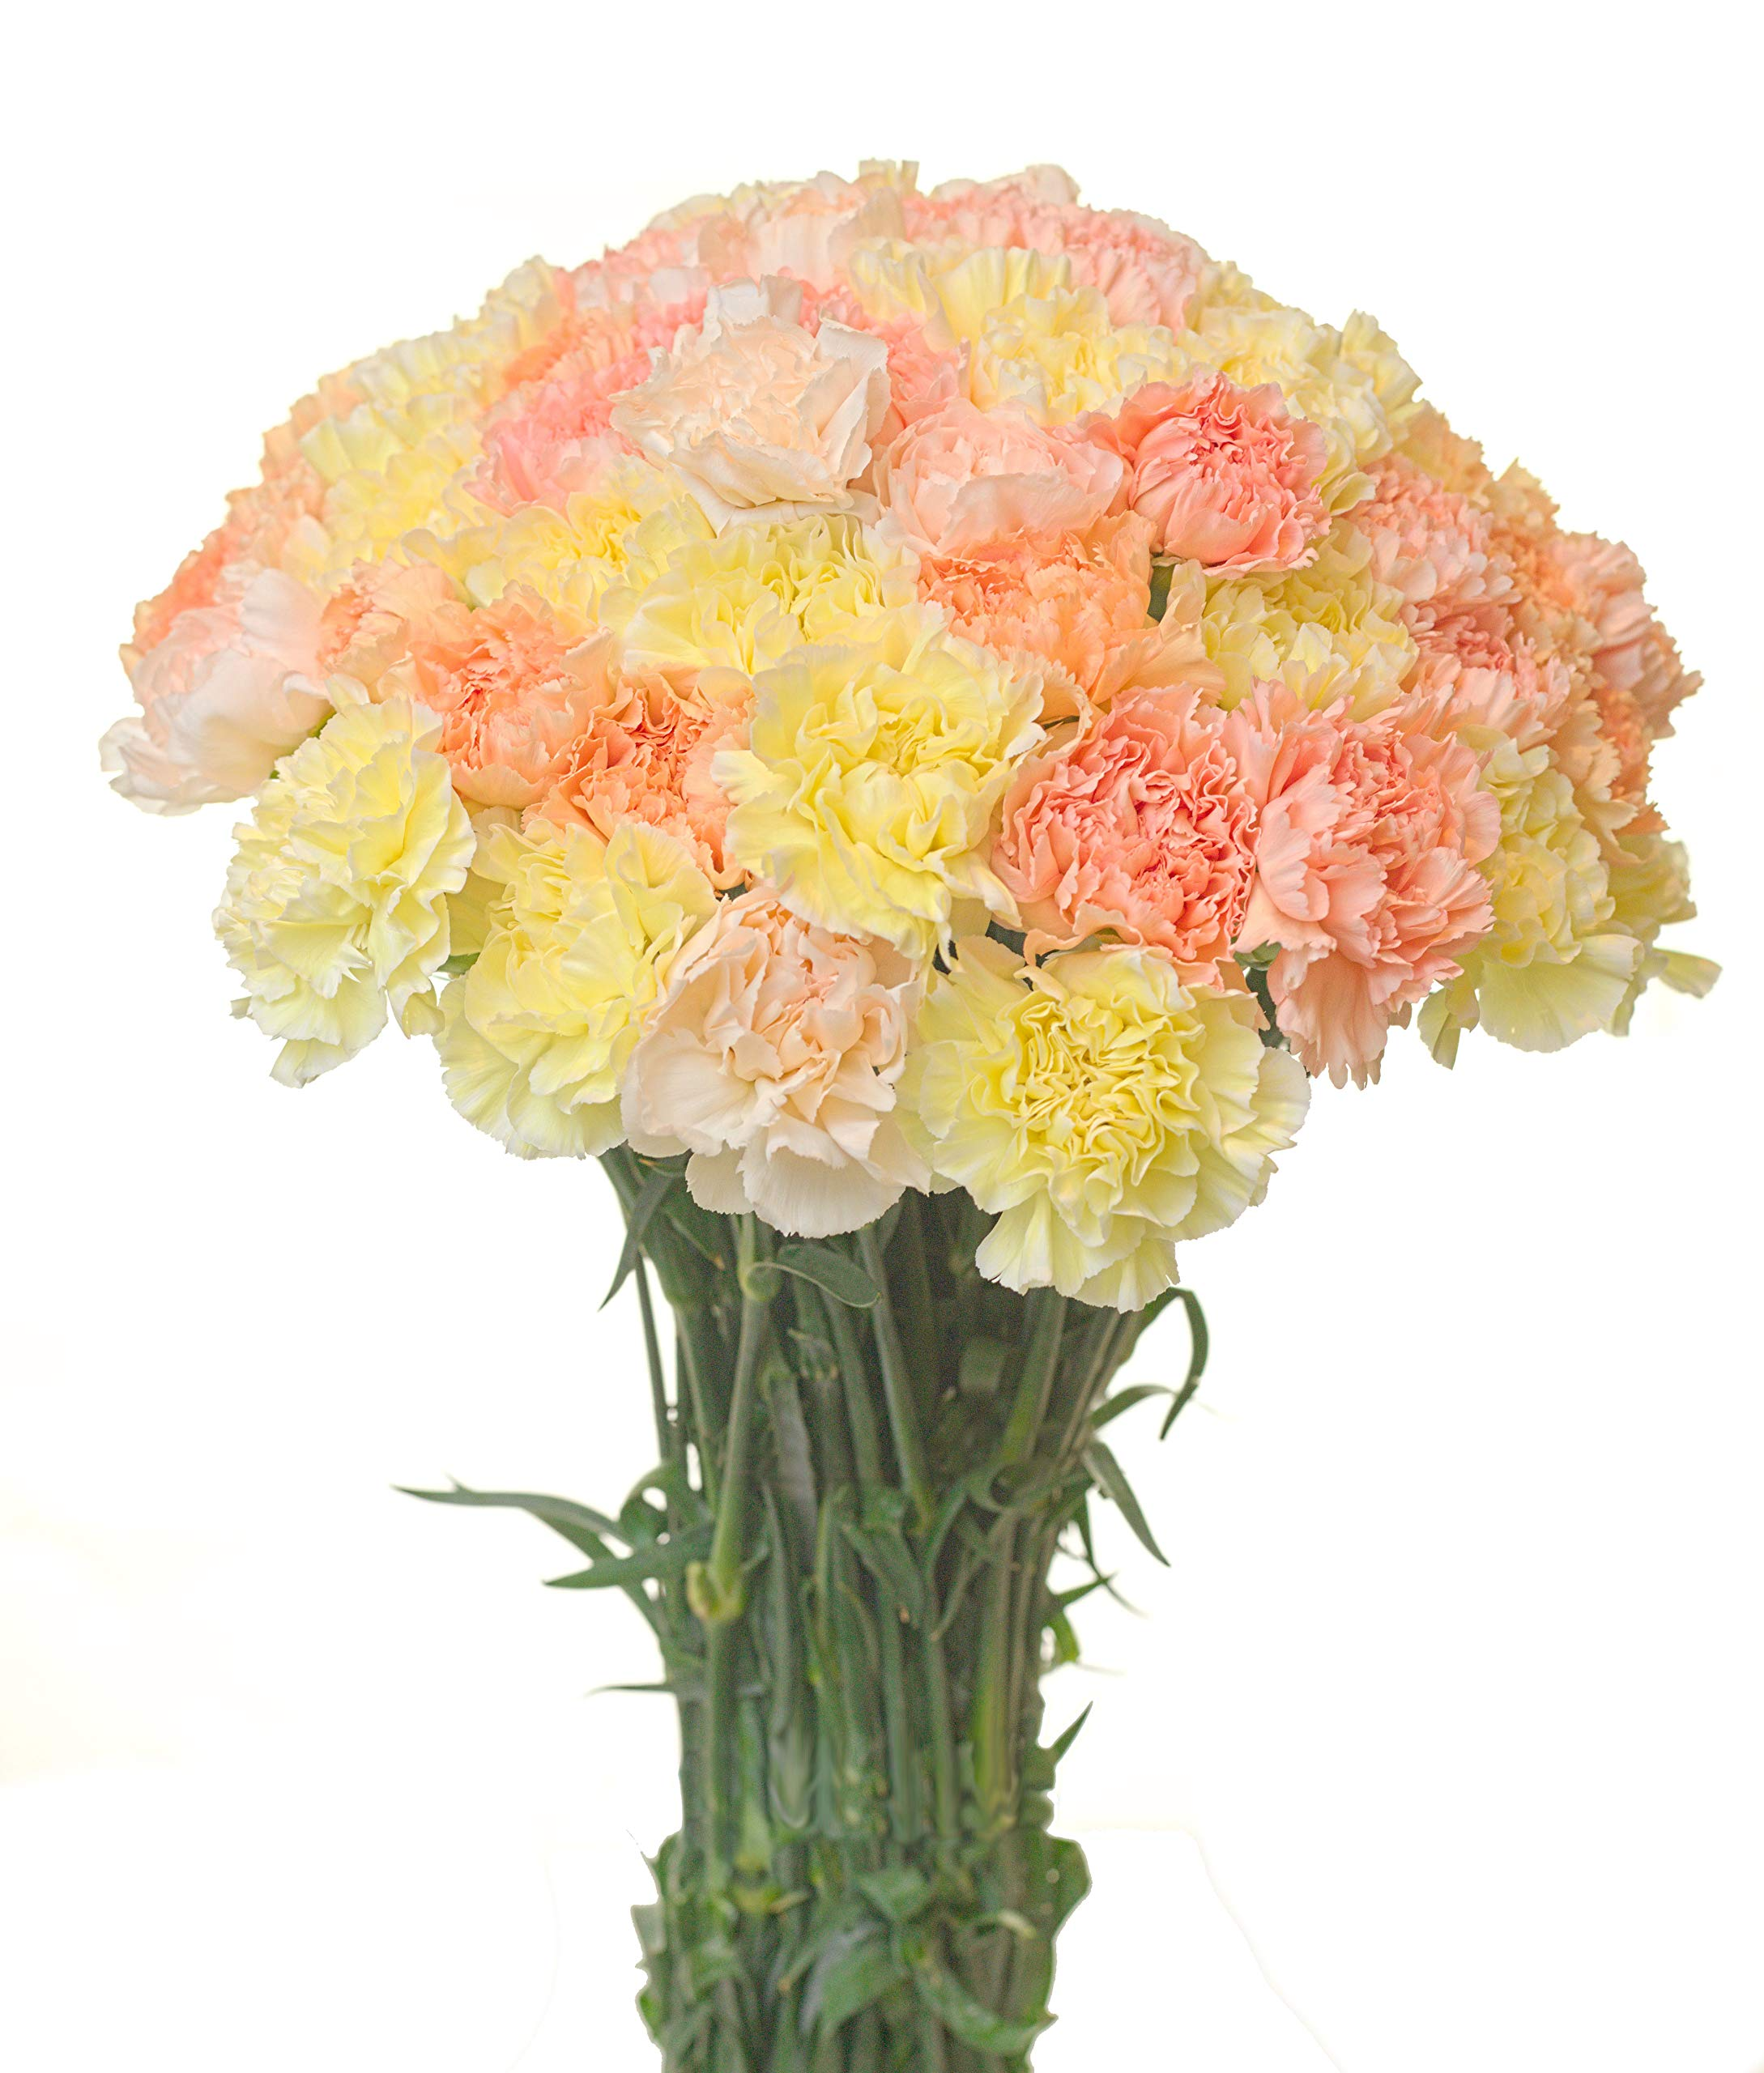 Carnations Special Holidays Pack (50, Easter) by Flower Prime